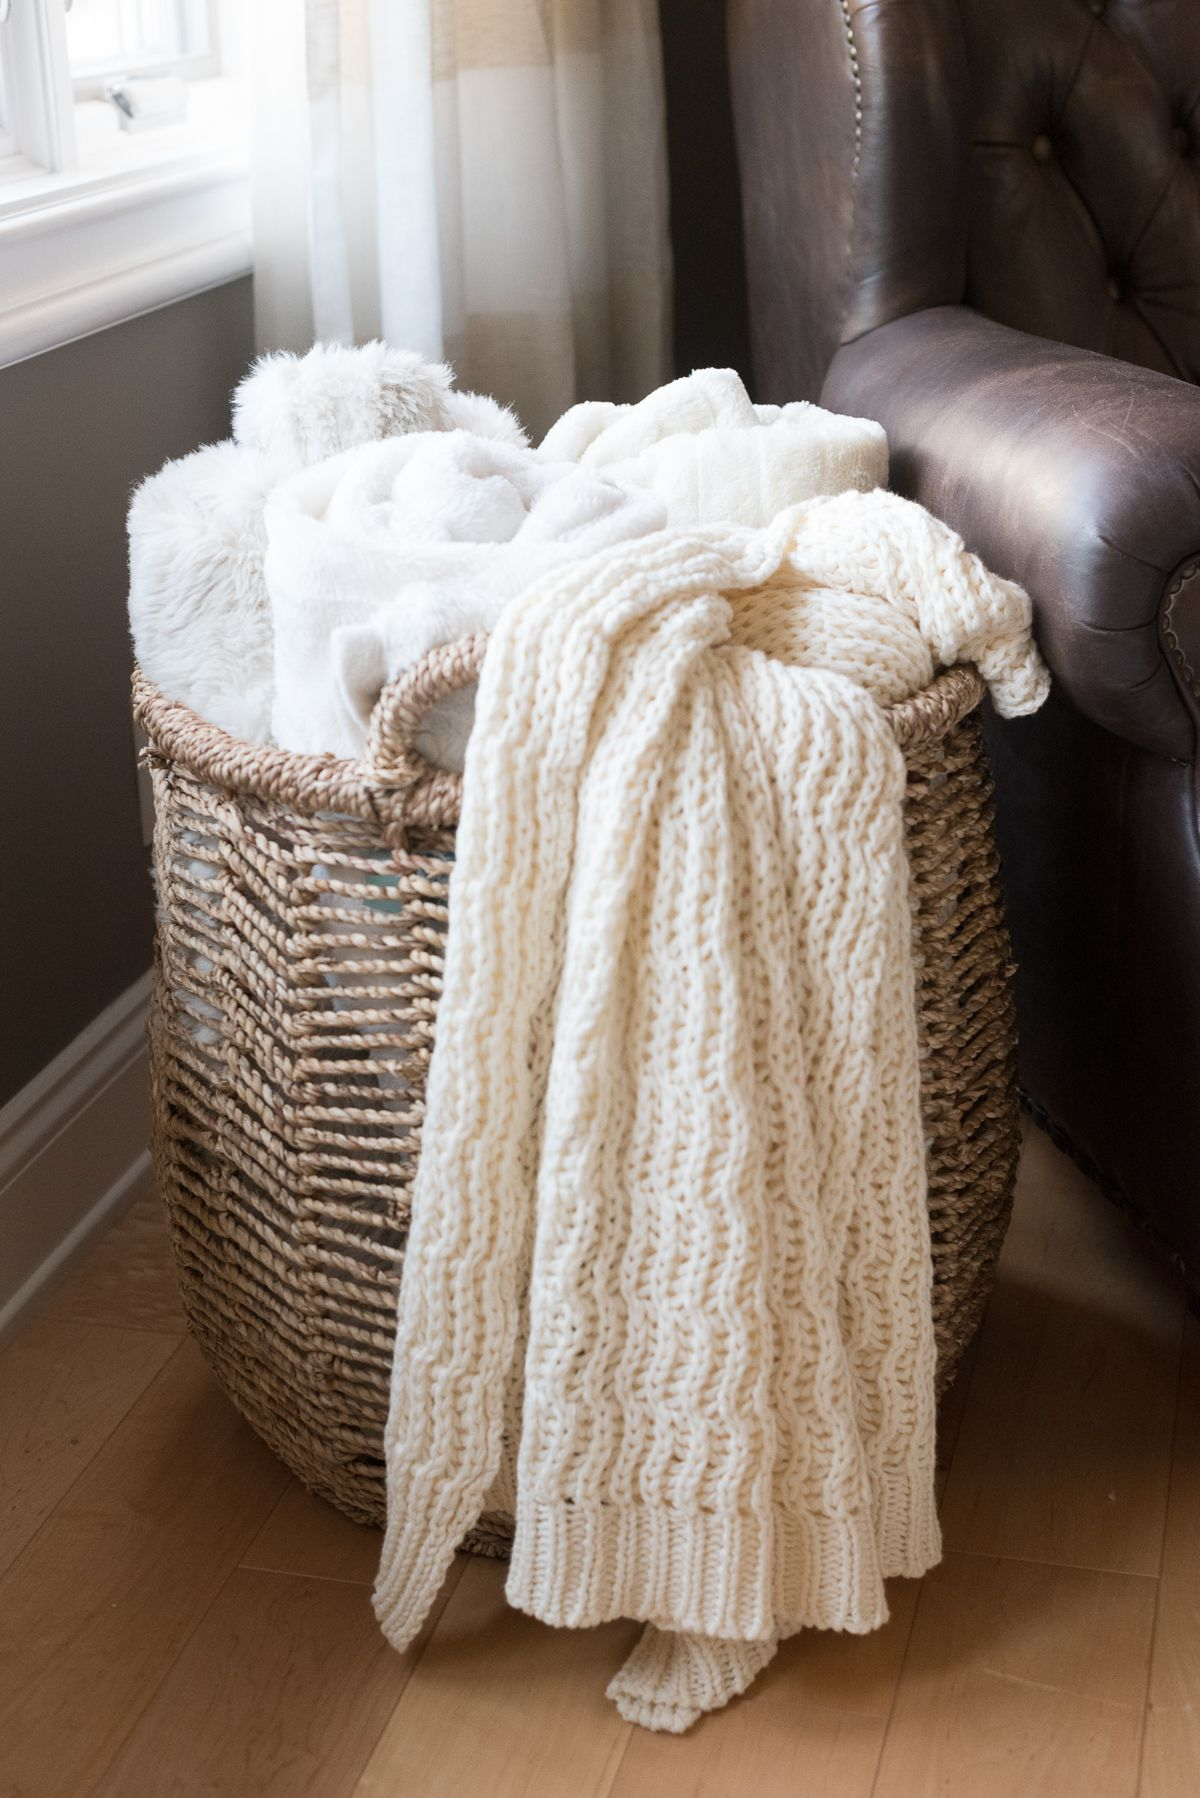 Throw Blankets Simple Hello Home  Decor Update  Pinterest  Cozy Blanket And Apartments